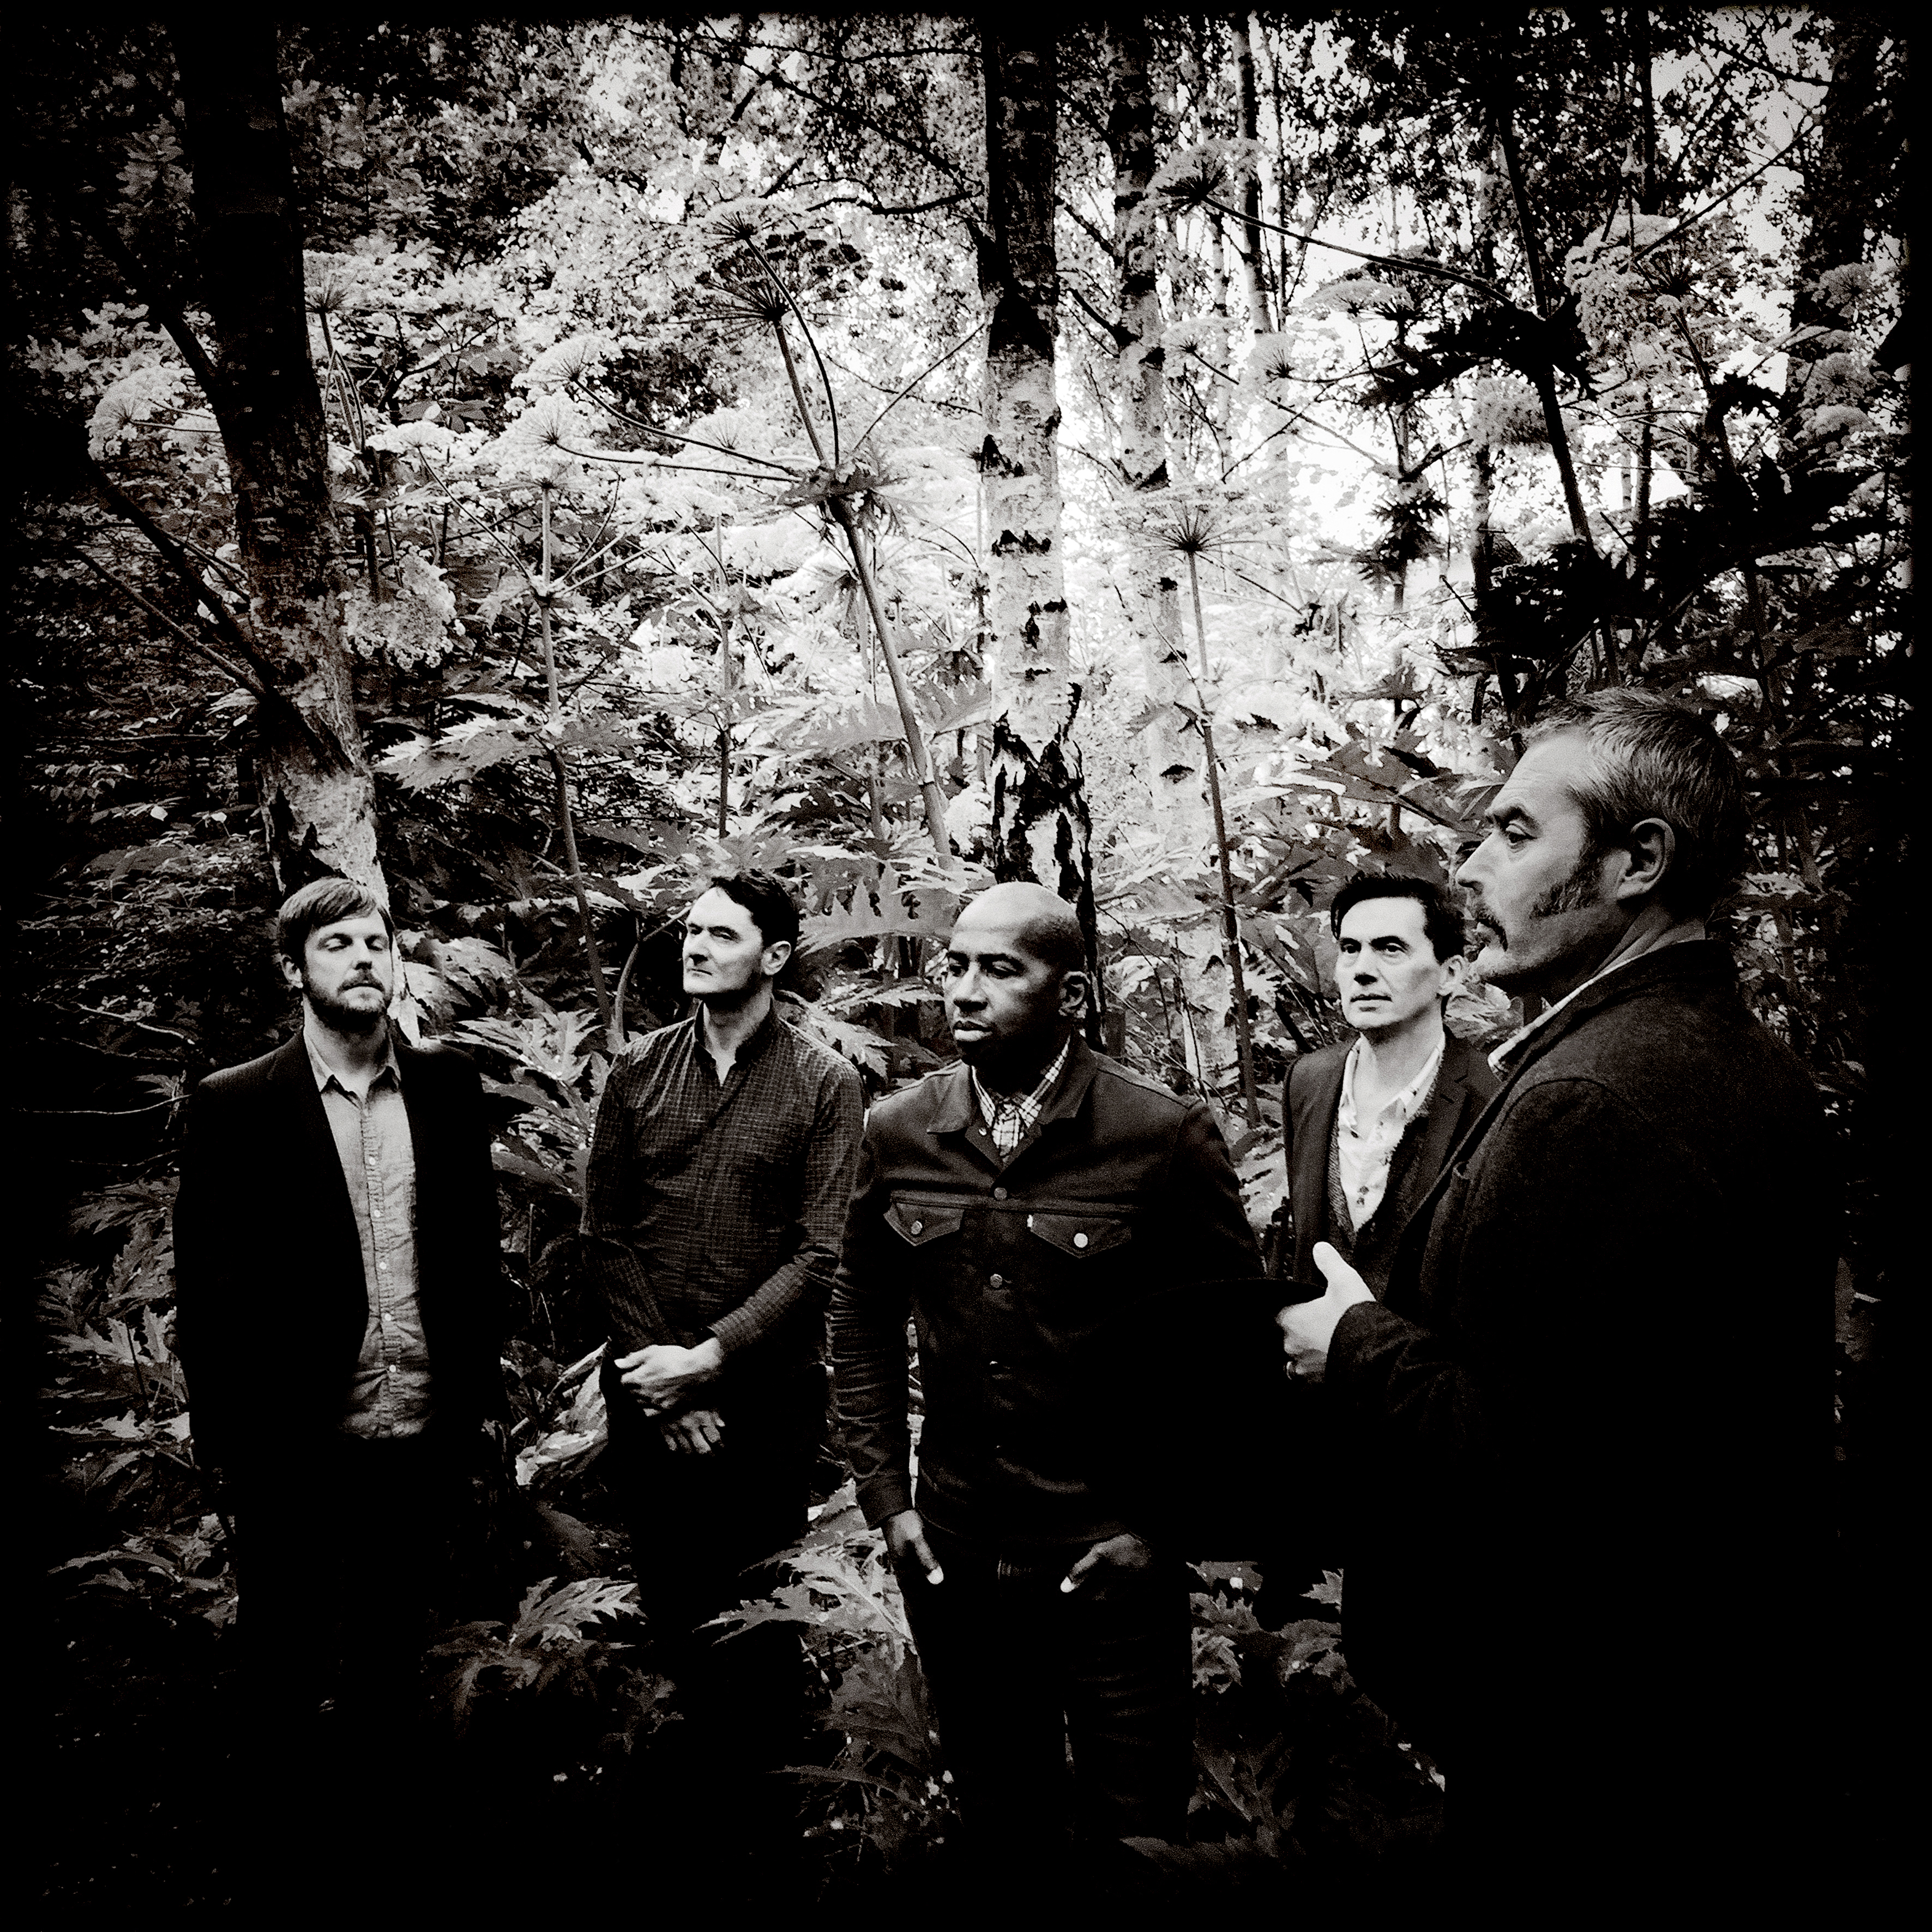 NEWS: Tindersticks announce new album and film project